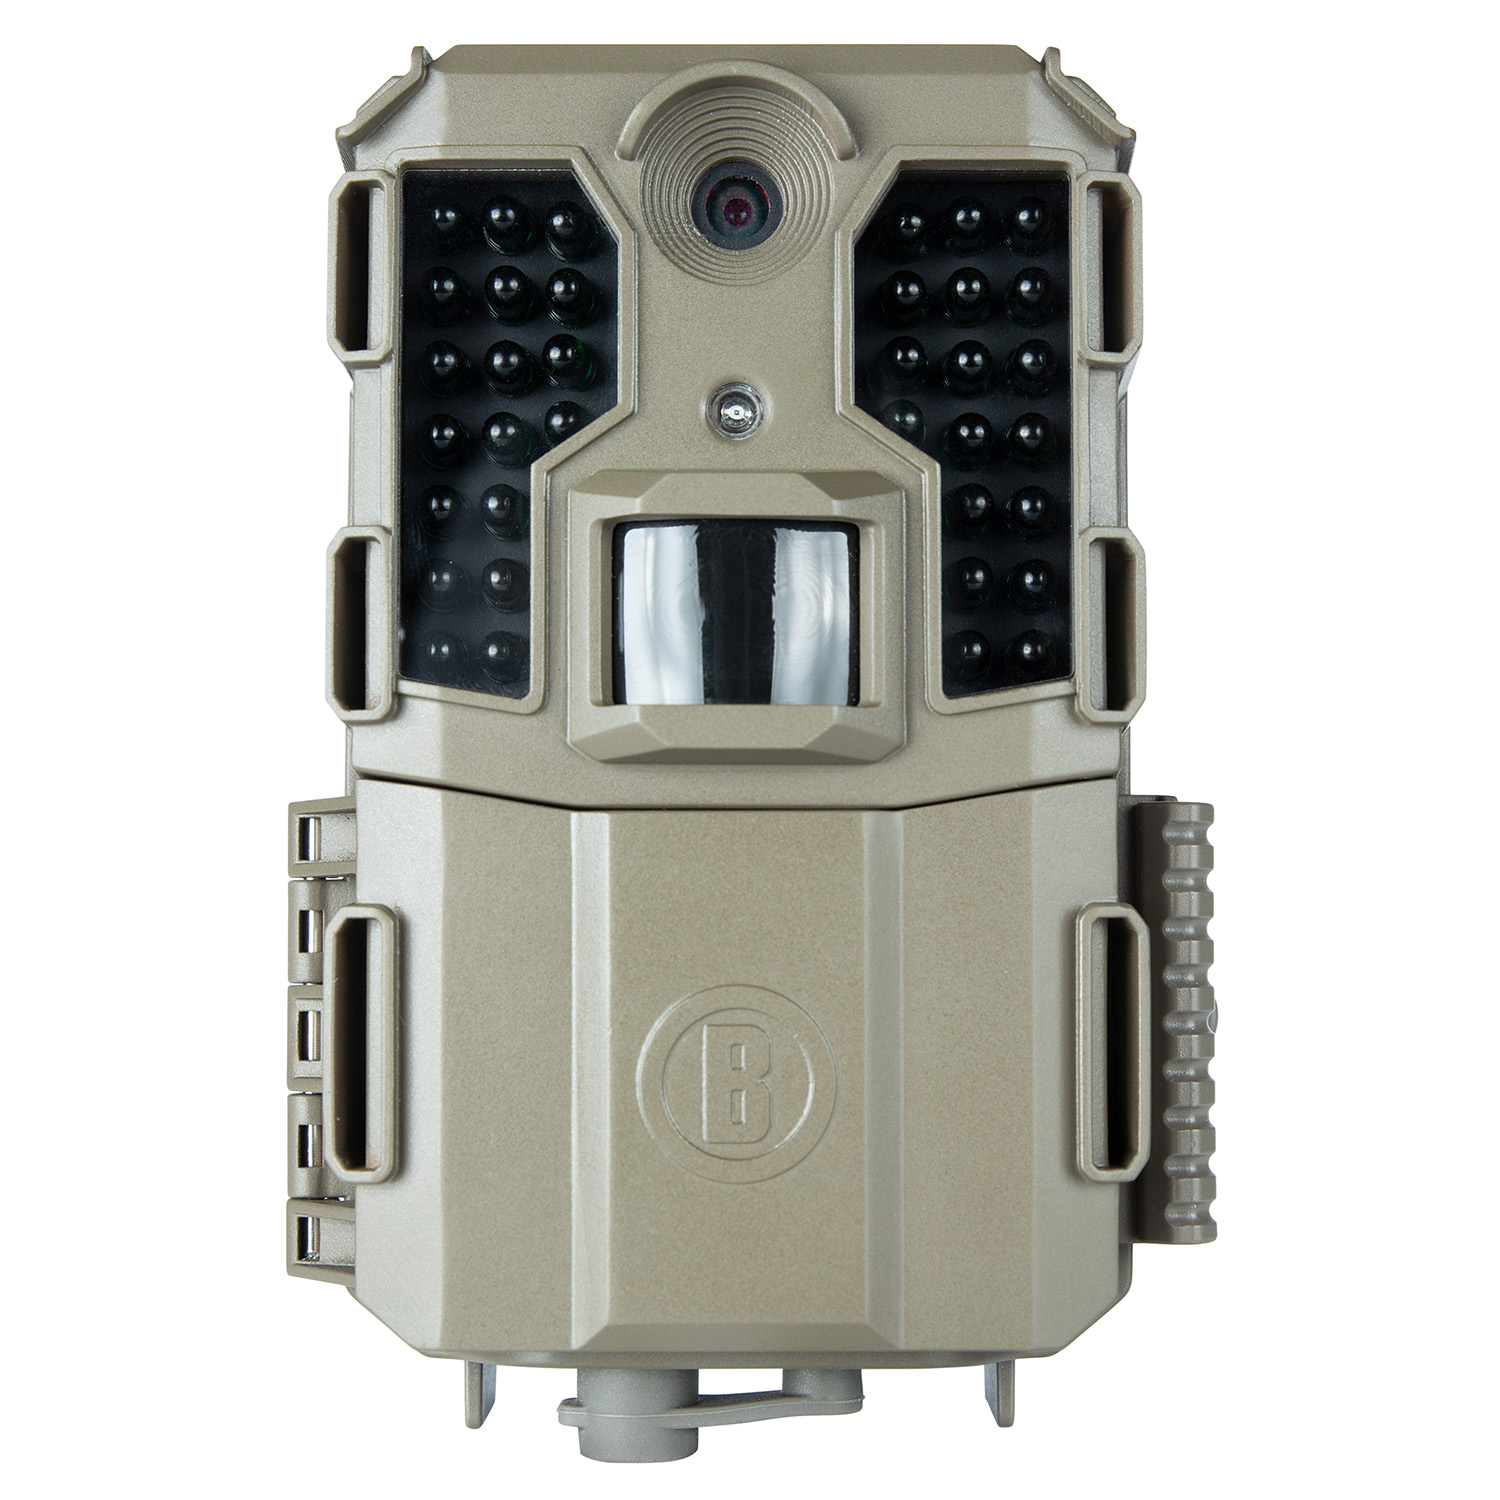 Bushnell 119930B Prime L20 Brown, Text LCD Display, 3/12/20MP Resolution, Red Glow Flash, SD Card Slot/Up to 32GB Memory